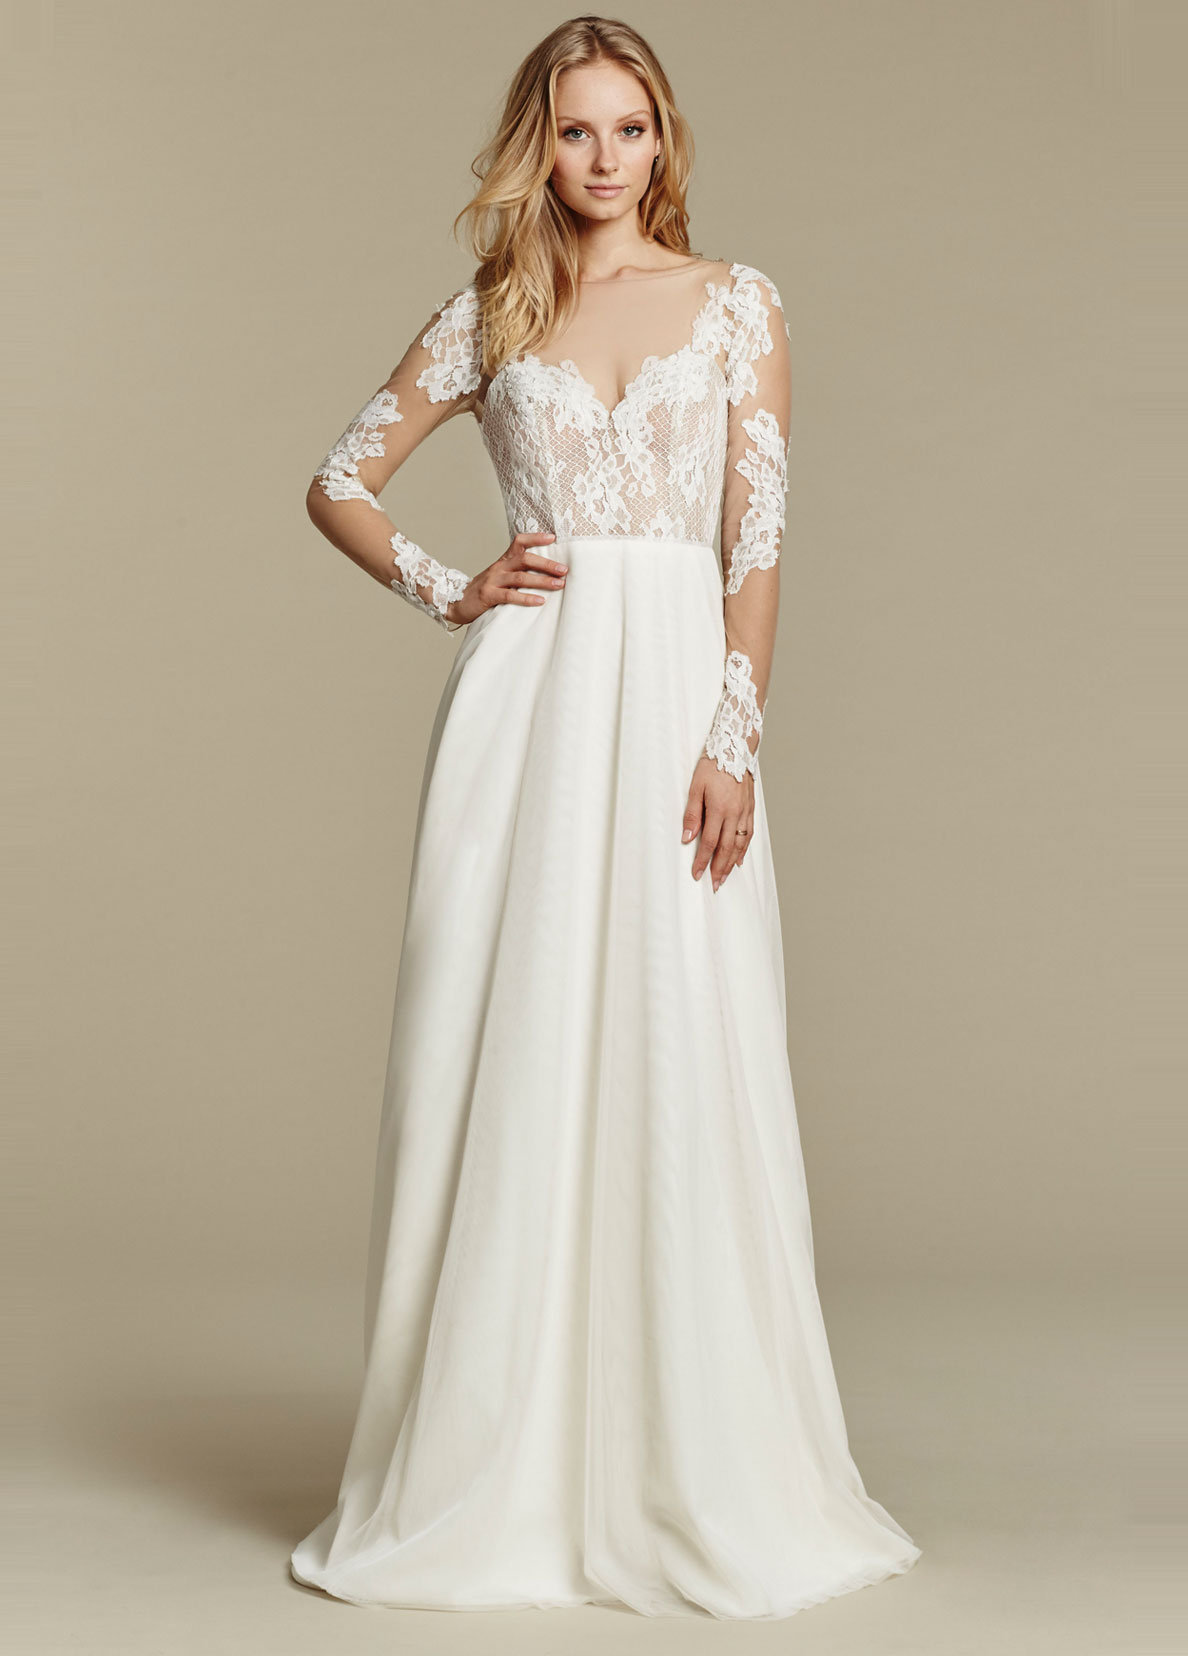 Simple Sheath Wedding Dress By Blush Hayley Paige Image 1 Zoomed In